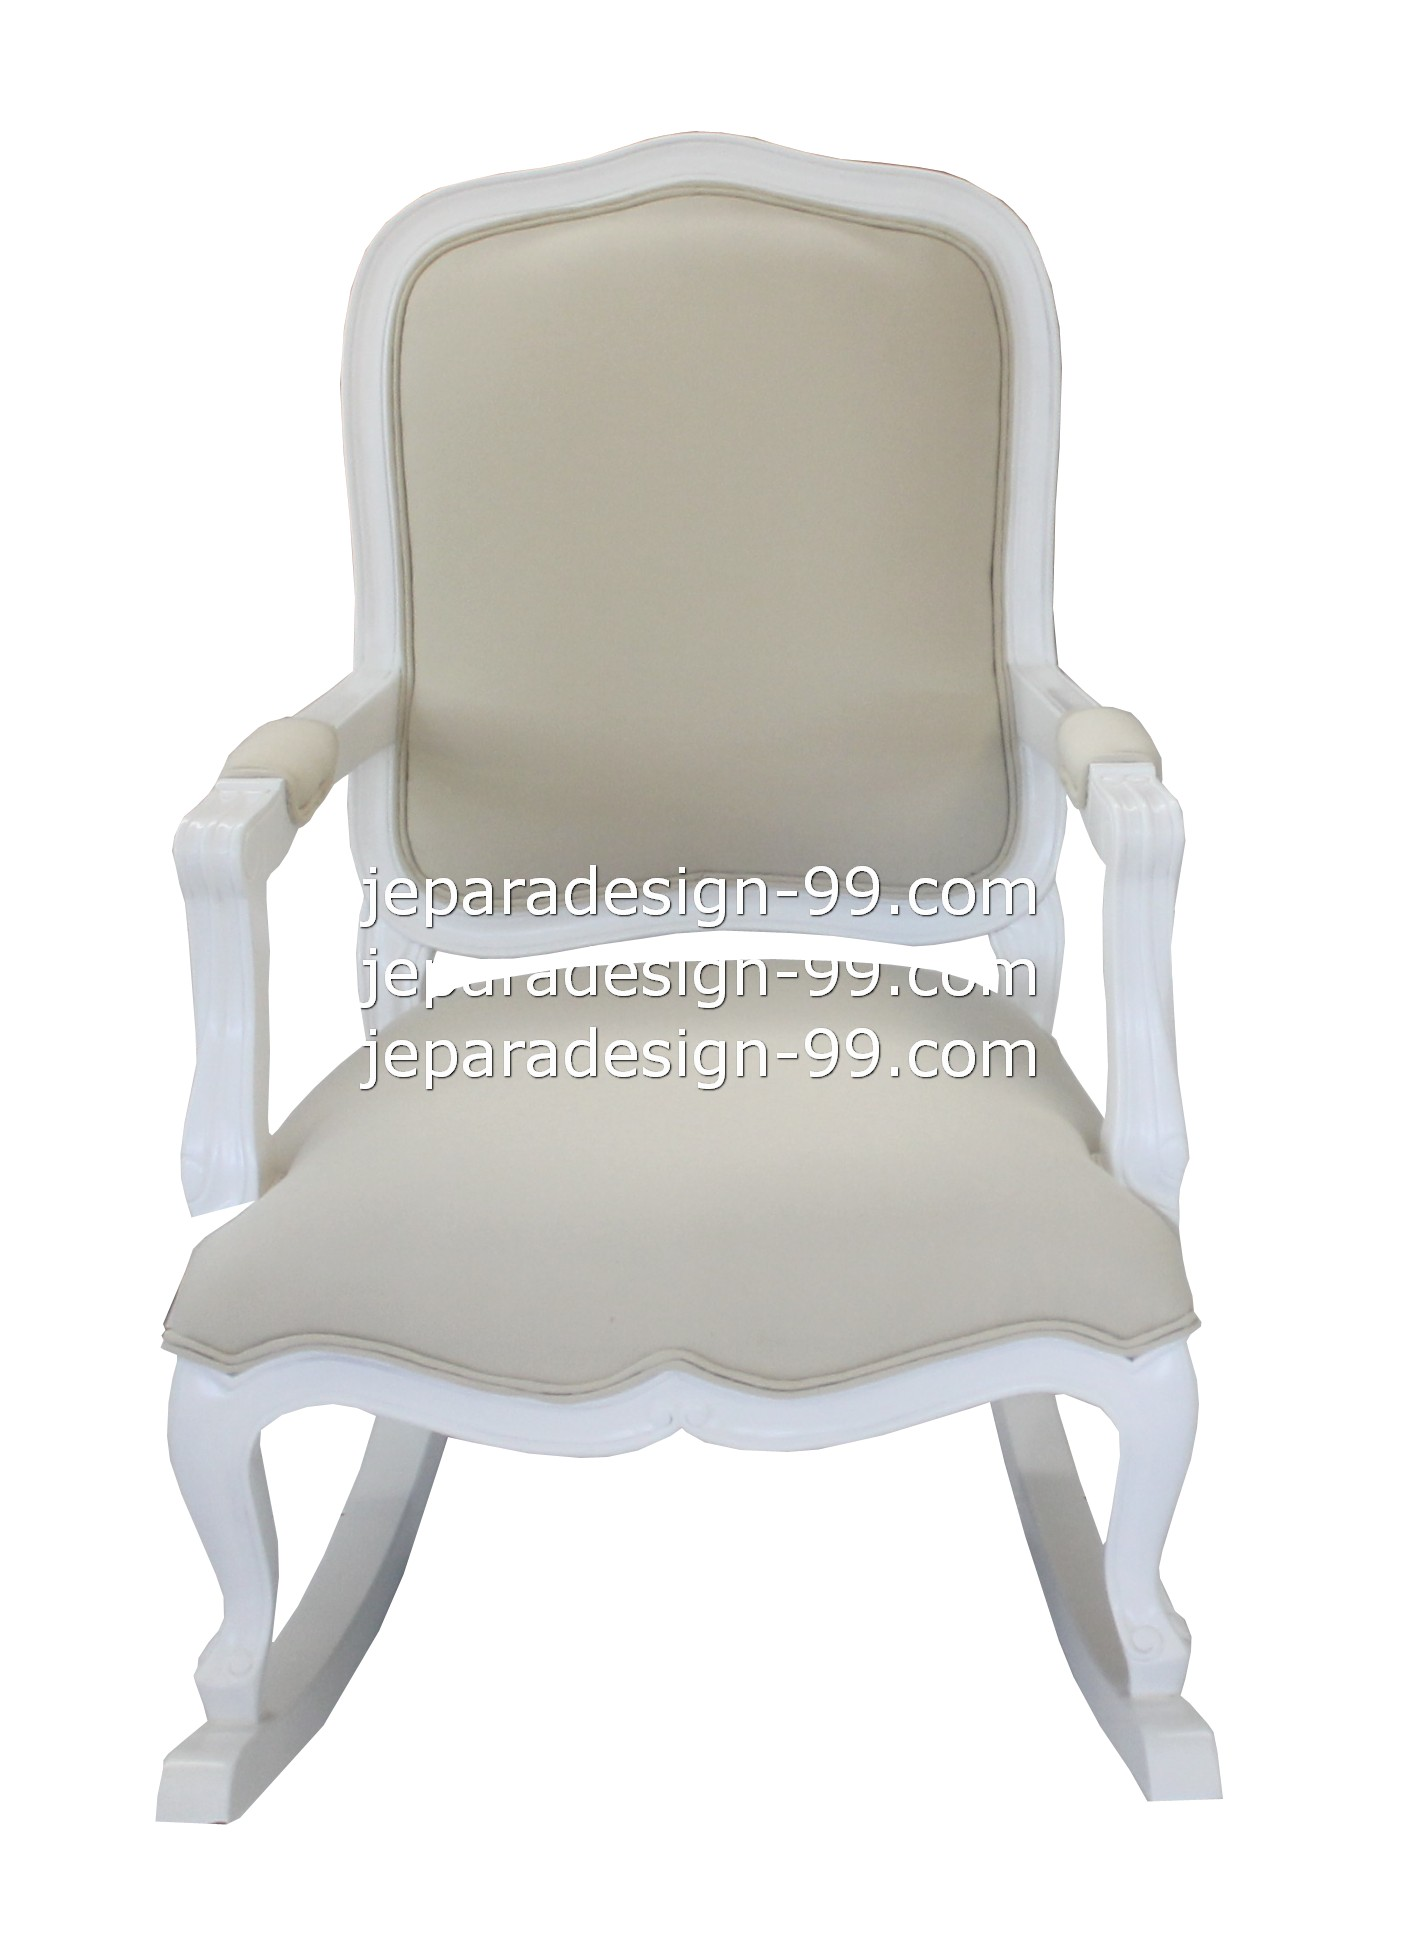 Elegant Image Of French Provincial Rocking Chair RCH 001 A